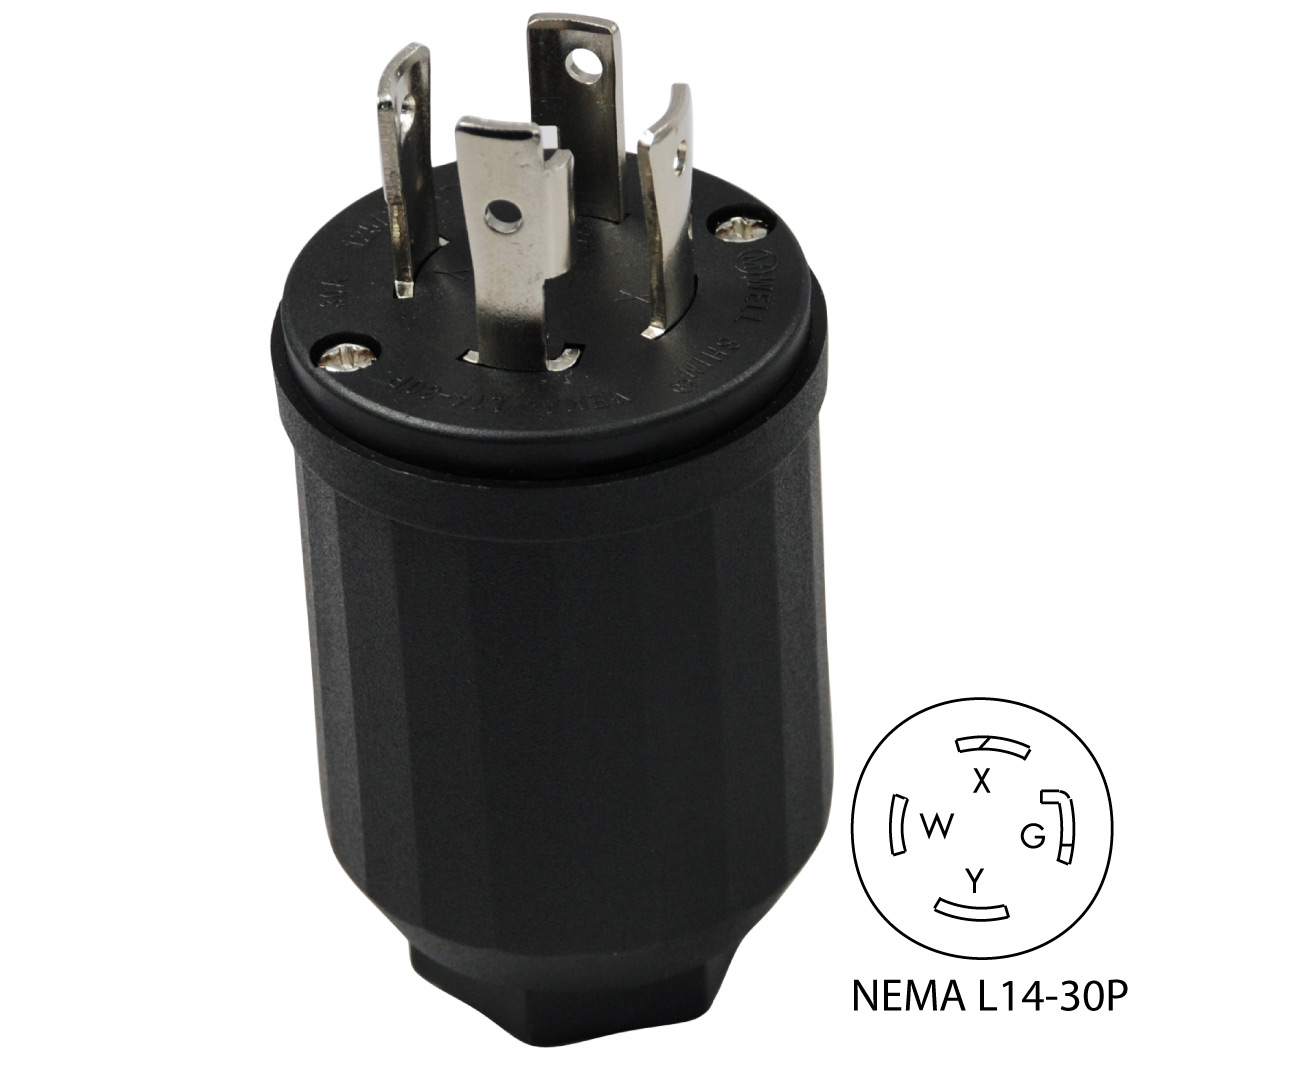 nema l14 30p plug wiring diagram for a 3 way toggle switch conntek 60319 assembly replacement